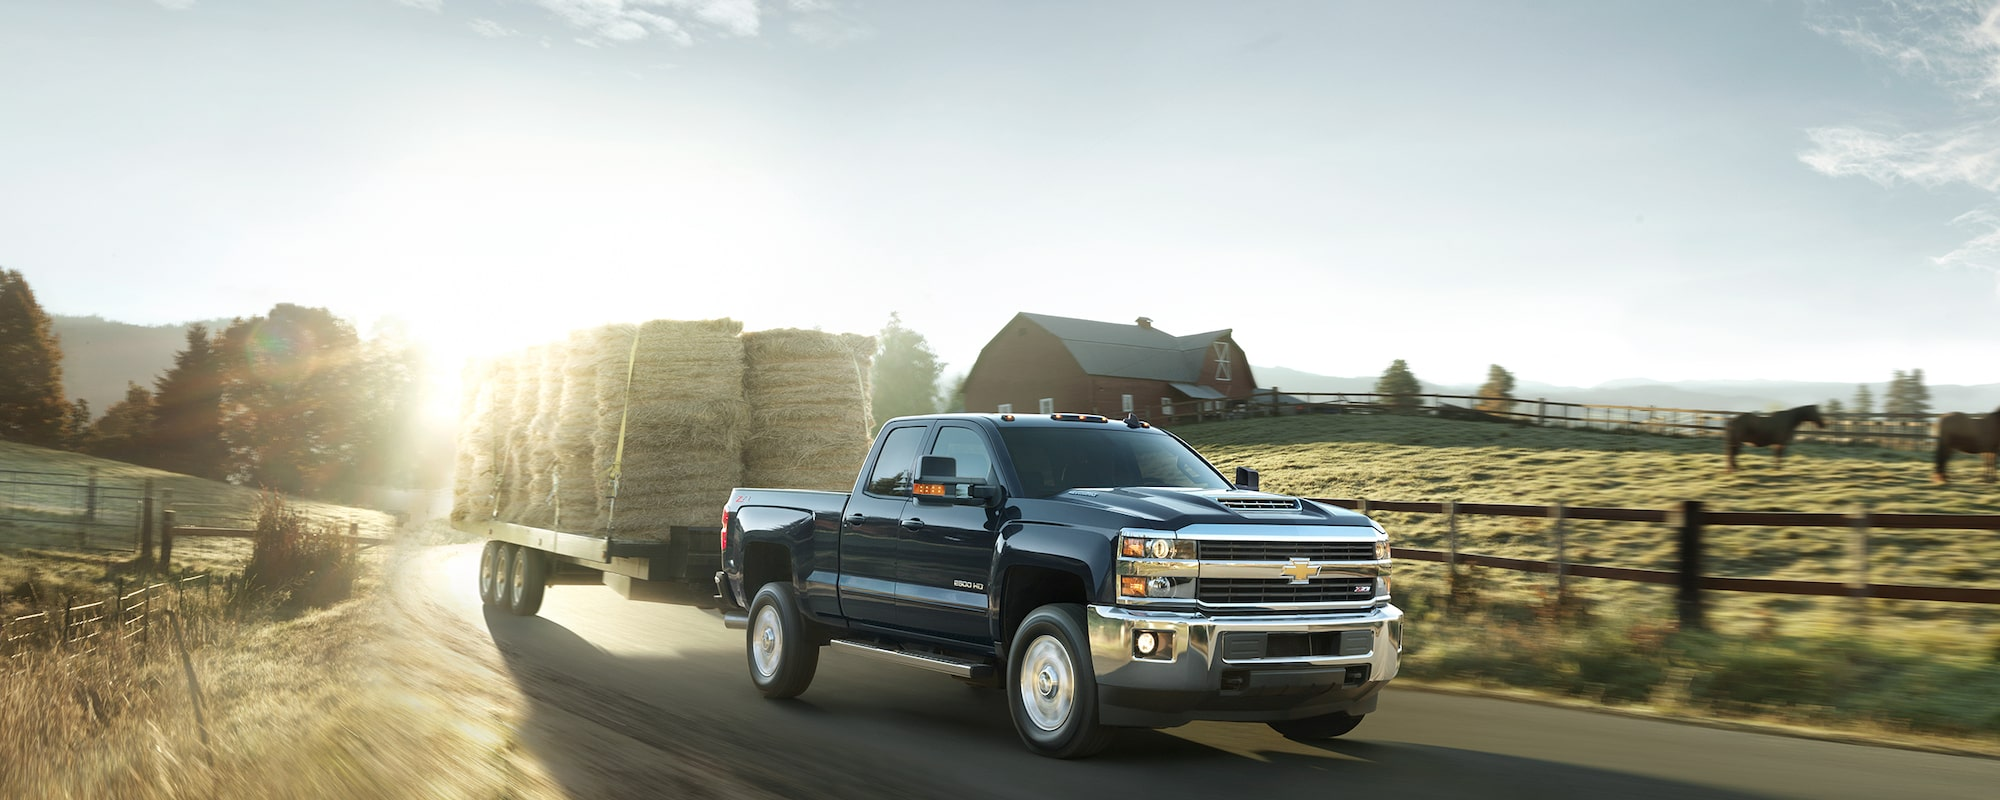 2018 Chevrolet Silverado HD Pickup